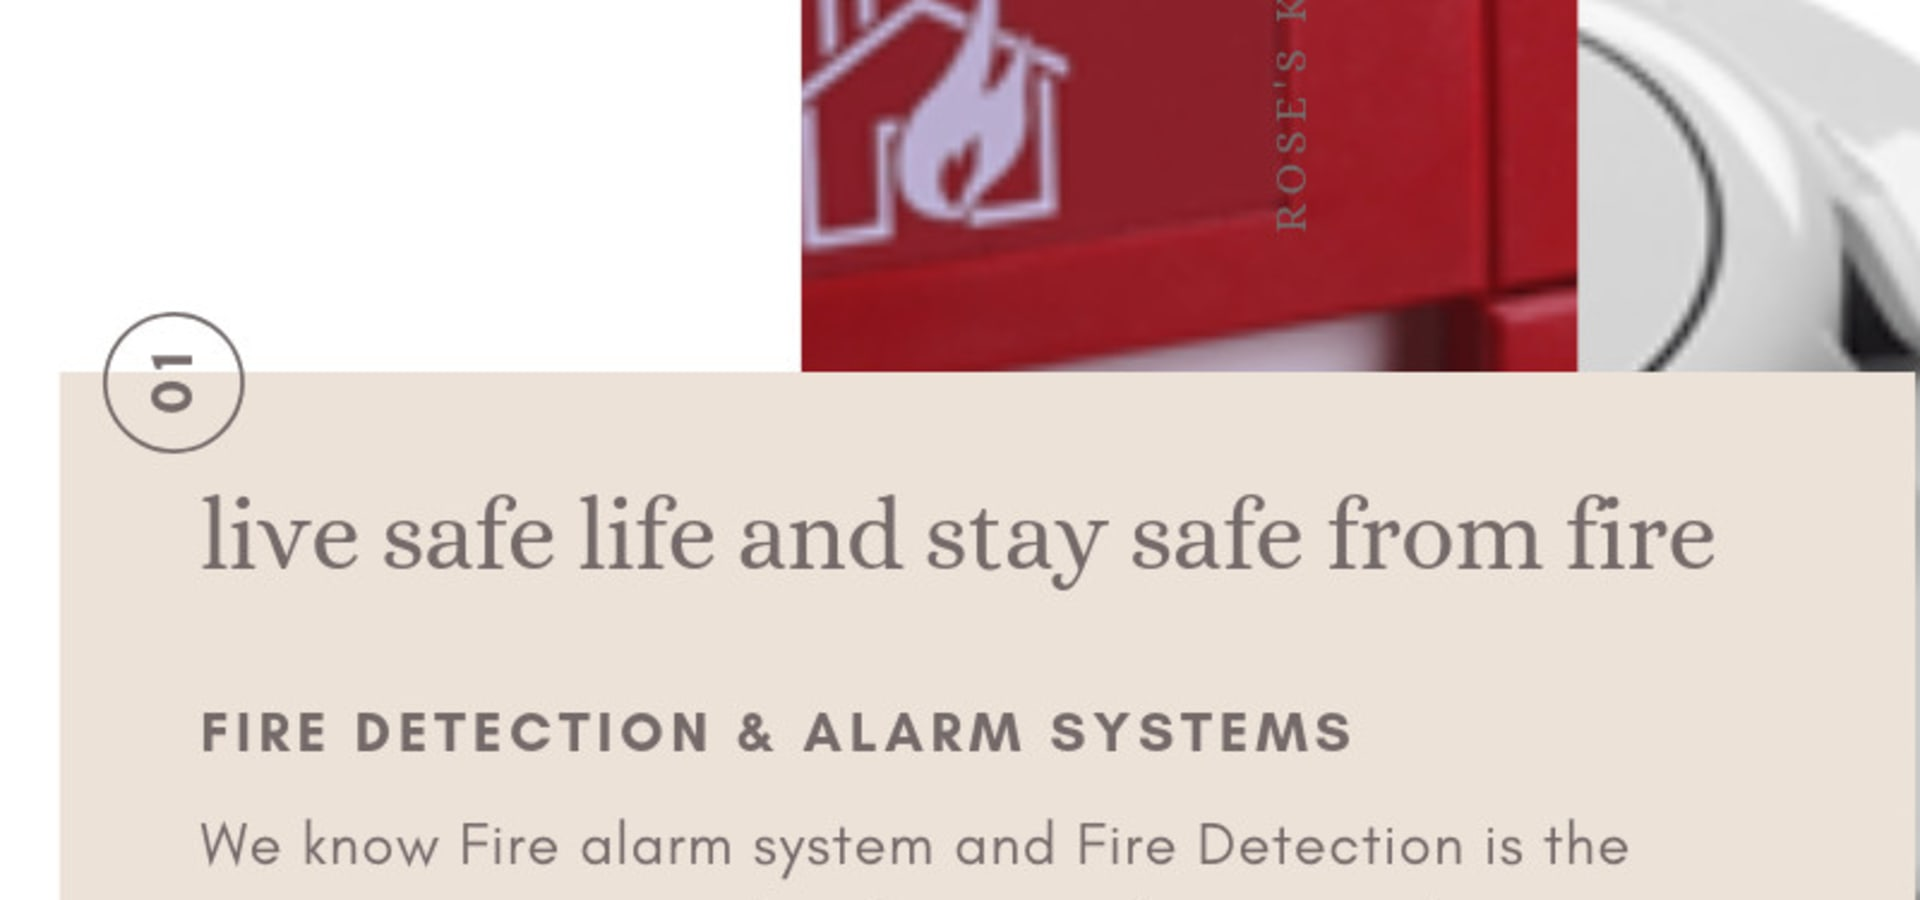 Fire Detection & Alarm System in India